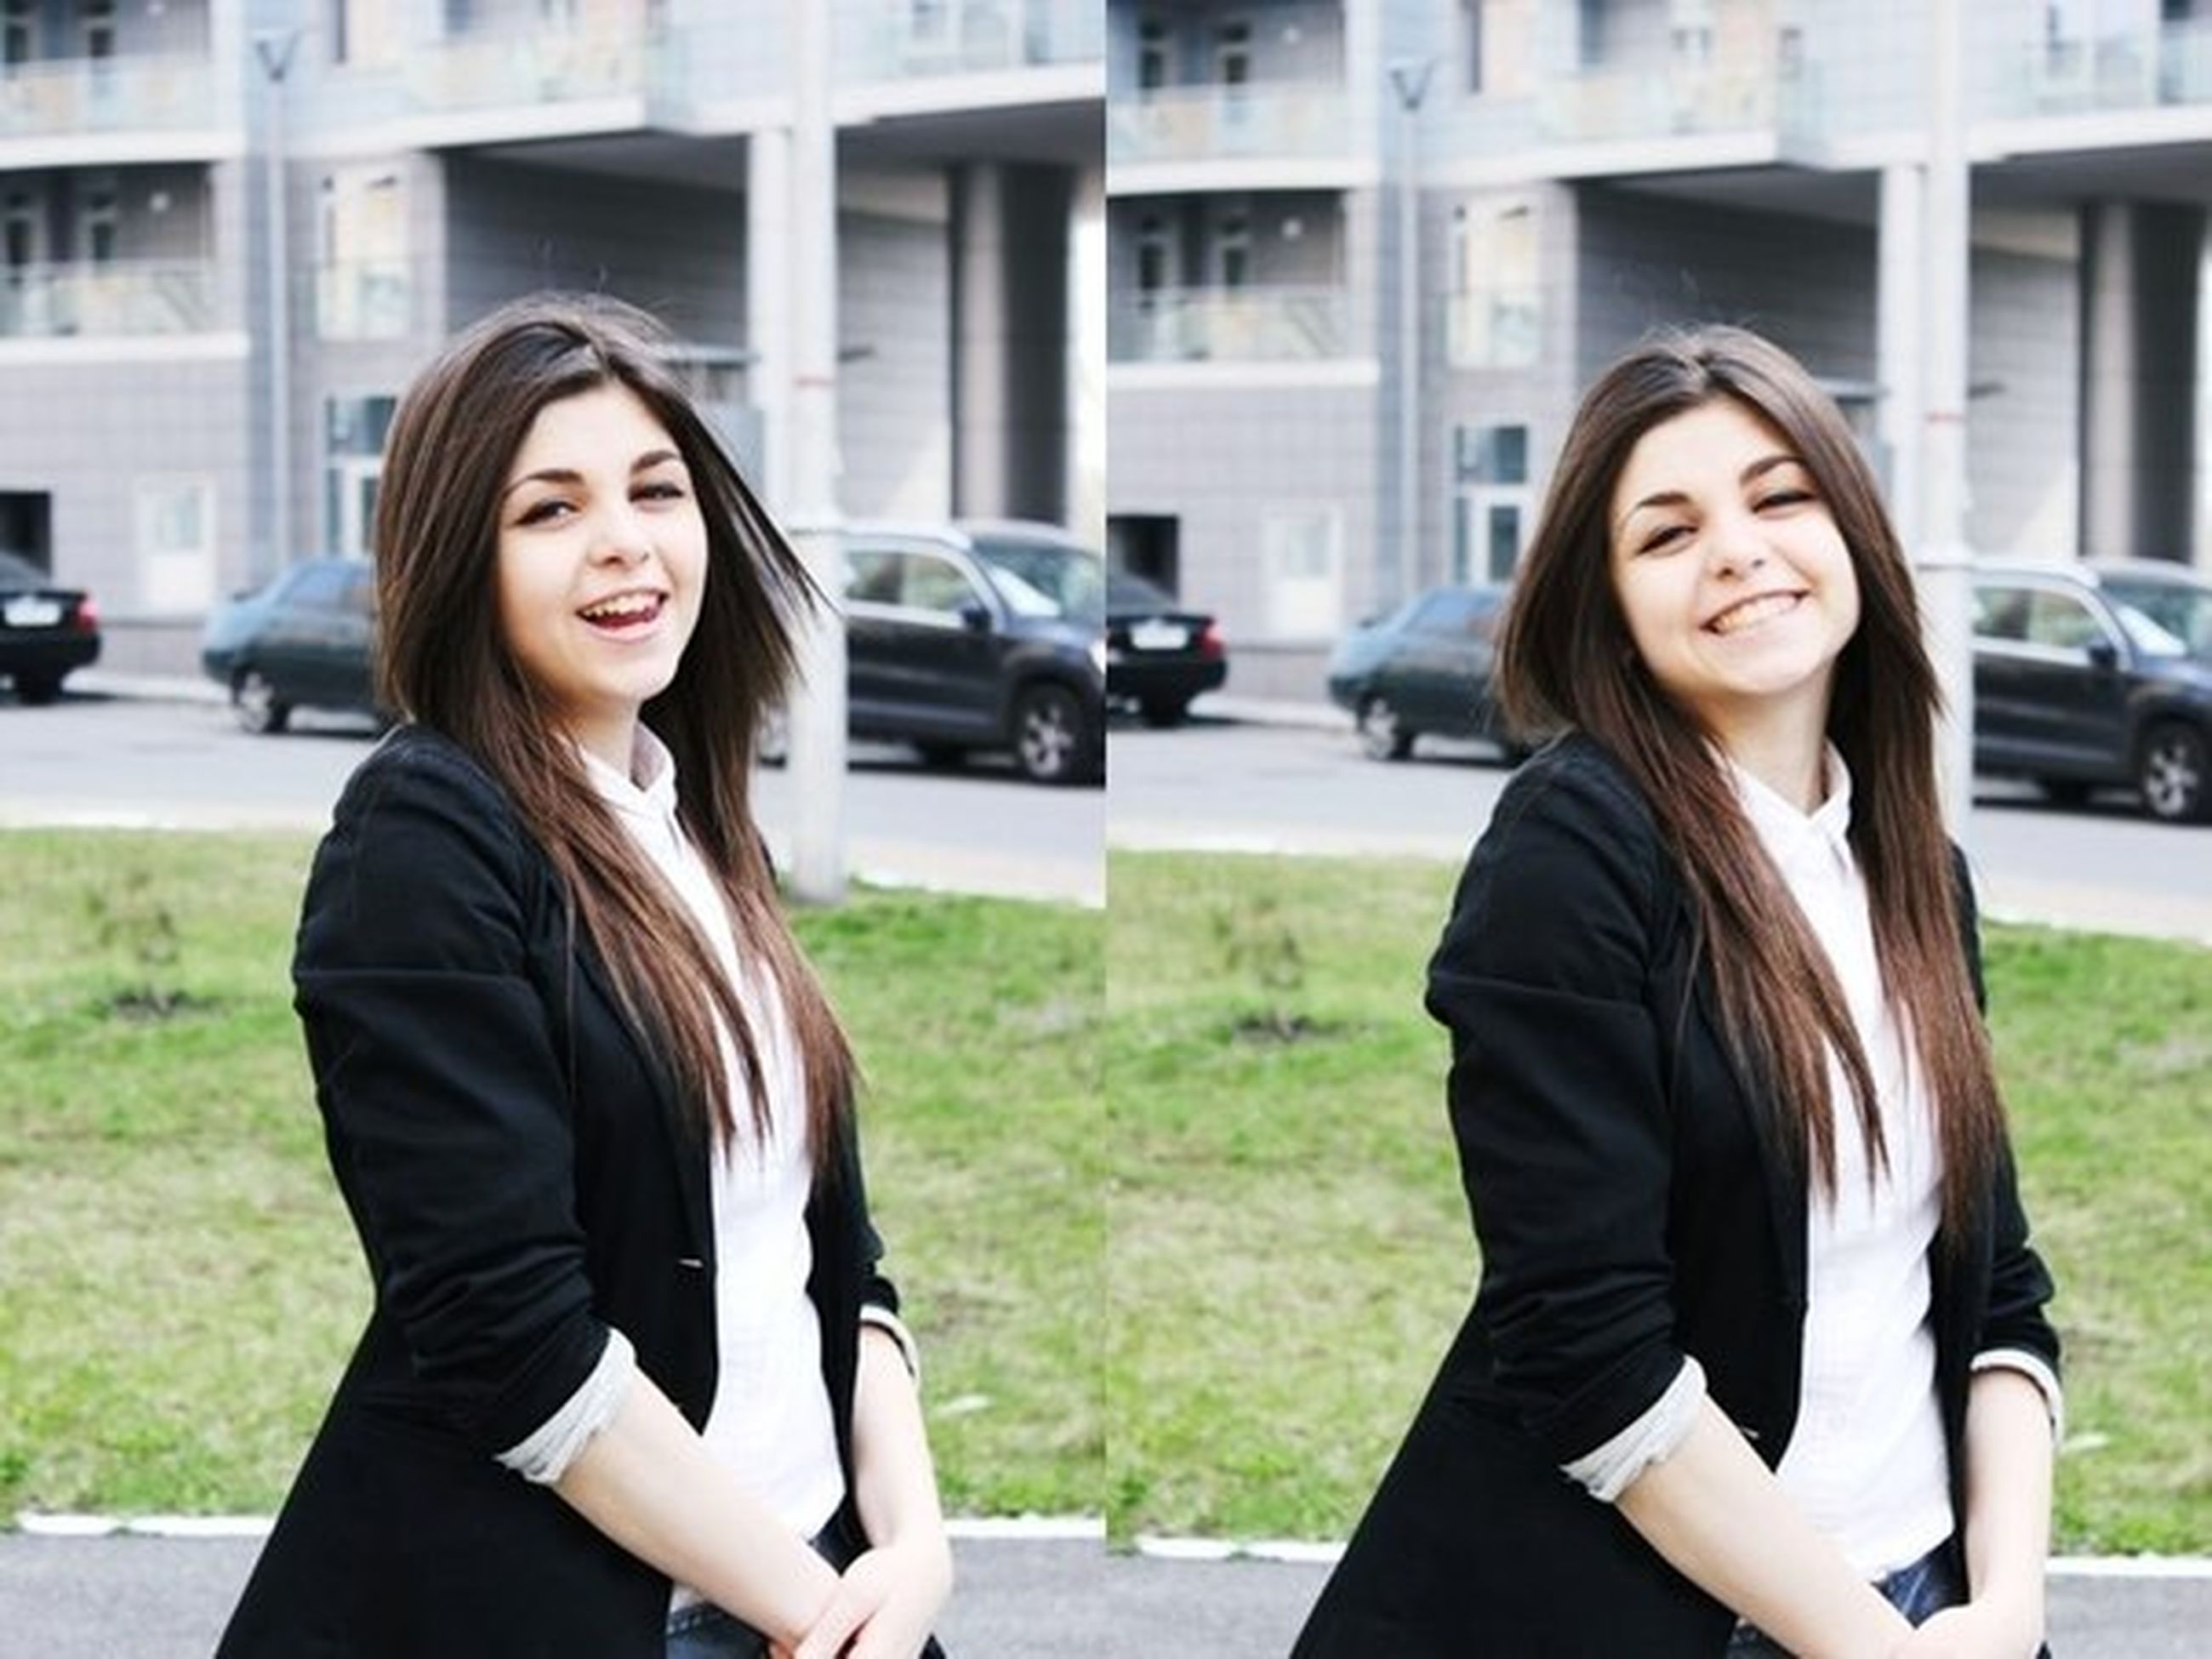 young adult, young women, focus on foreground, lifestyles, person, portrait, looking at camera, smiling, casual clothing, long hair, leisure activity, front view, standing, waist up, happiness, building exterior, medium-length hair